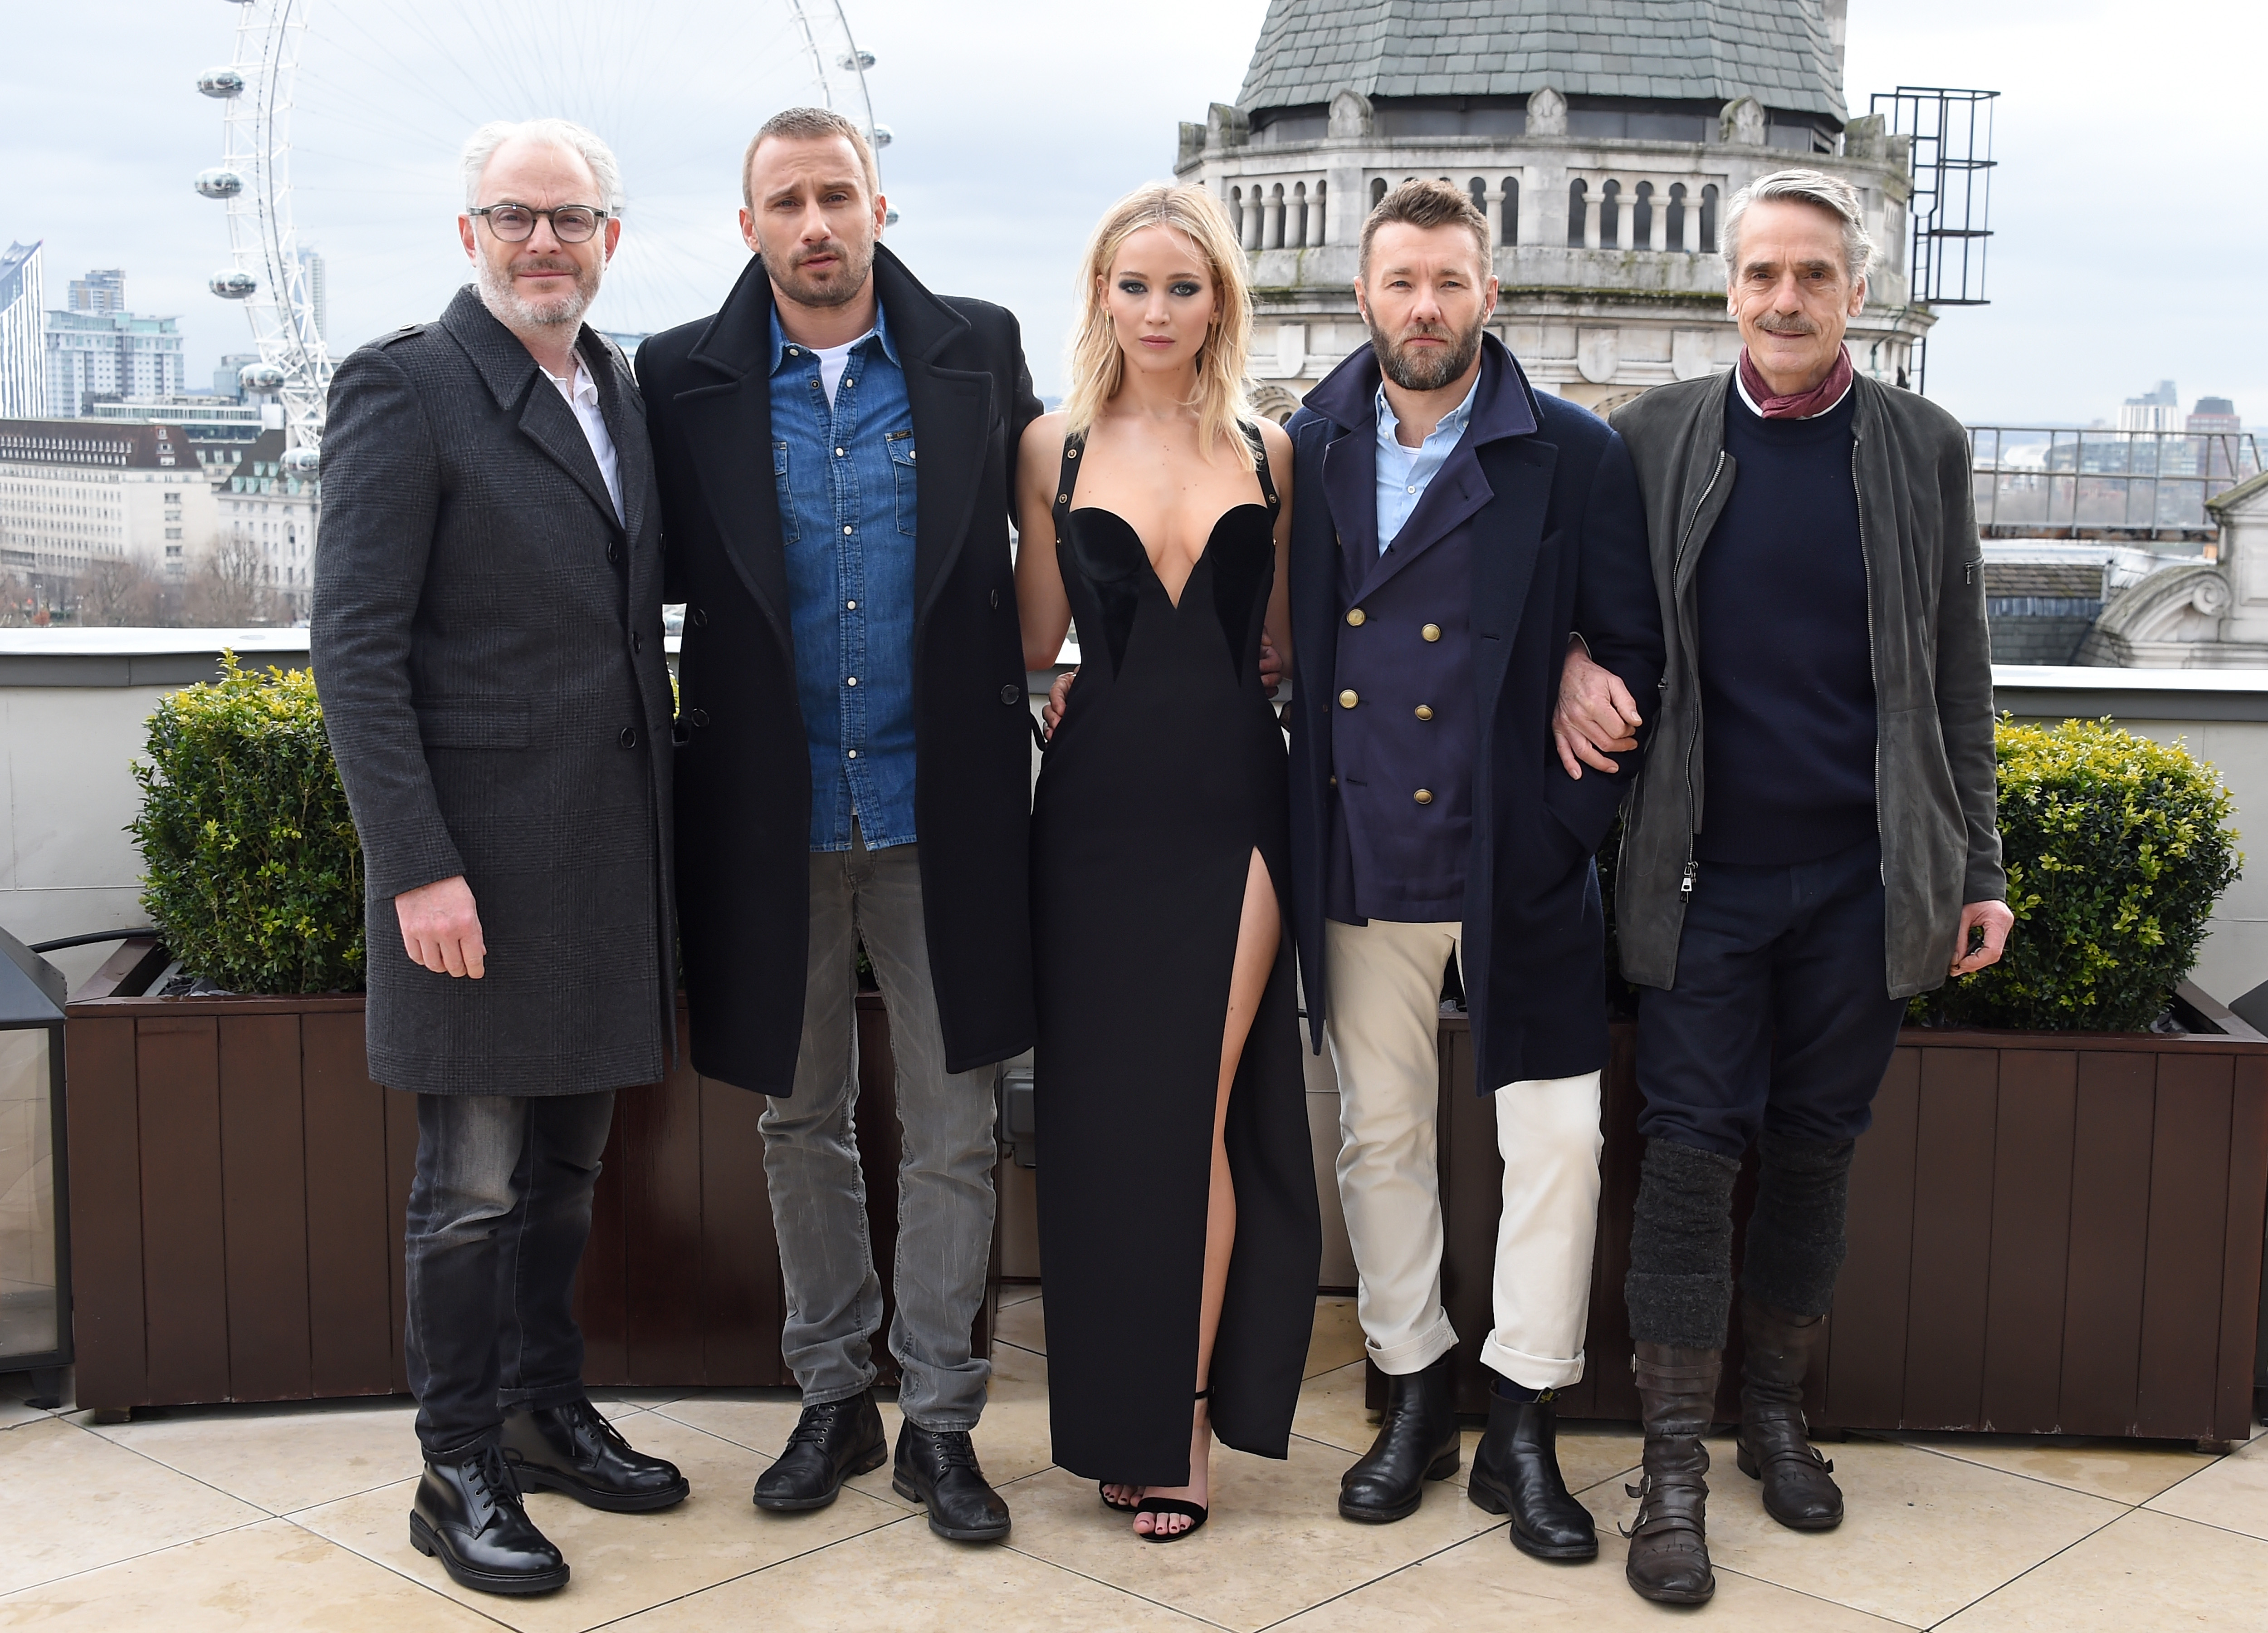 Francis Lawrence, Matthias Schoenaerts, Jennifer Lawrence, Joel Edgerton and Jeremy Irons attend the  Red Sparrow  photocall at Corinthia London on February 20, 2018 in London, England.  (Photo by David M. Benett/Dave Benett/Getty Images)